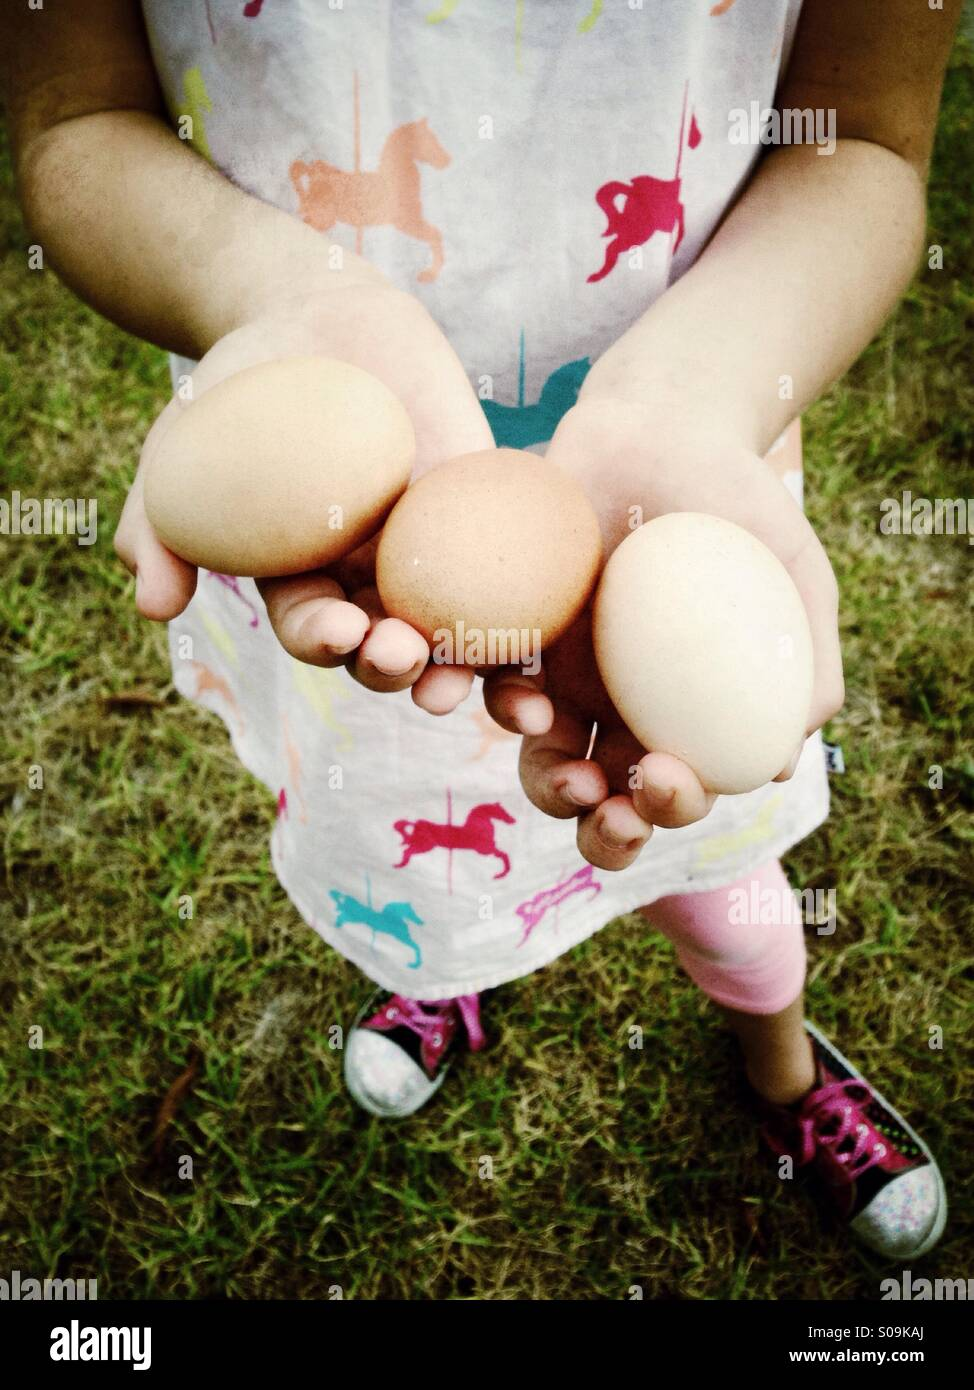 Three fresh eggs in the hands of a little girl - Stock Image